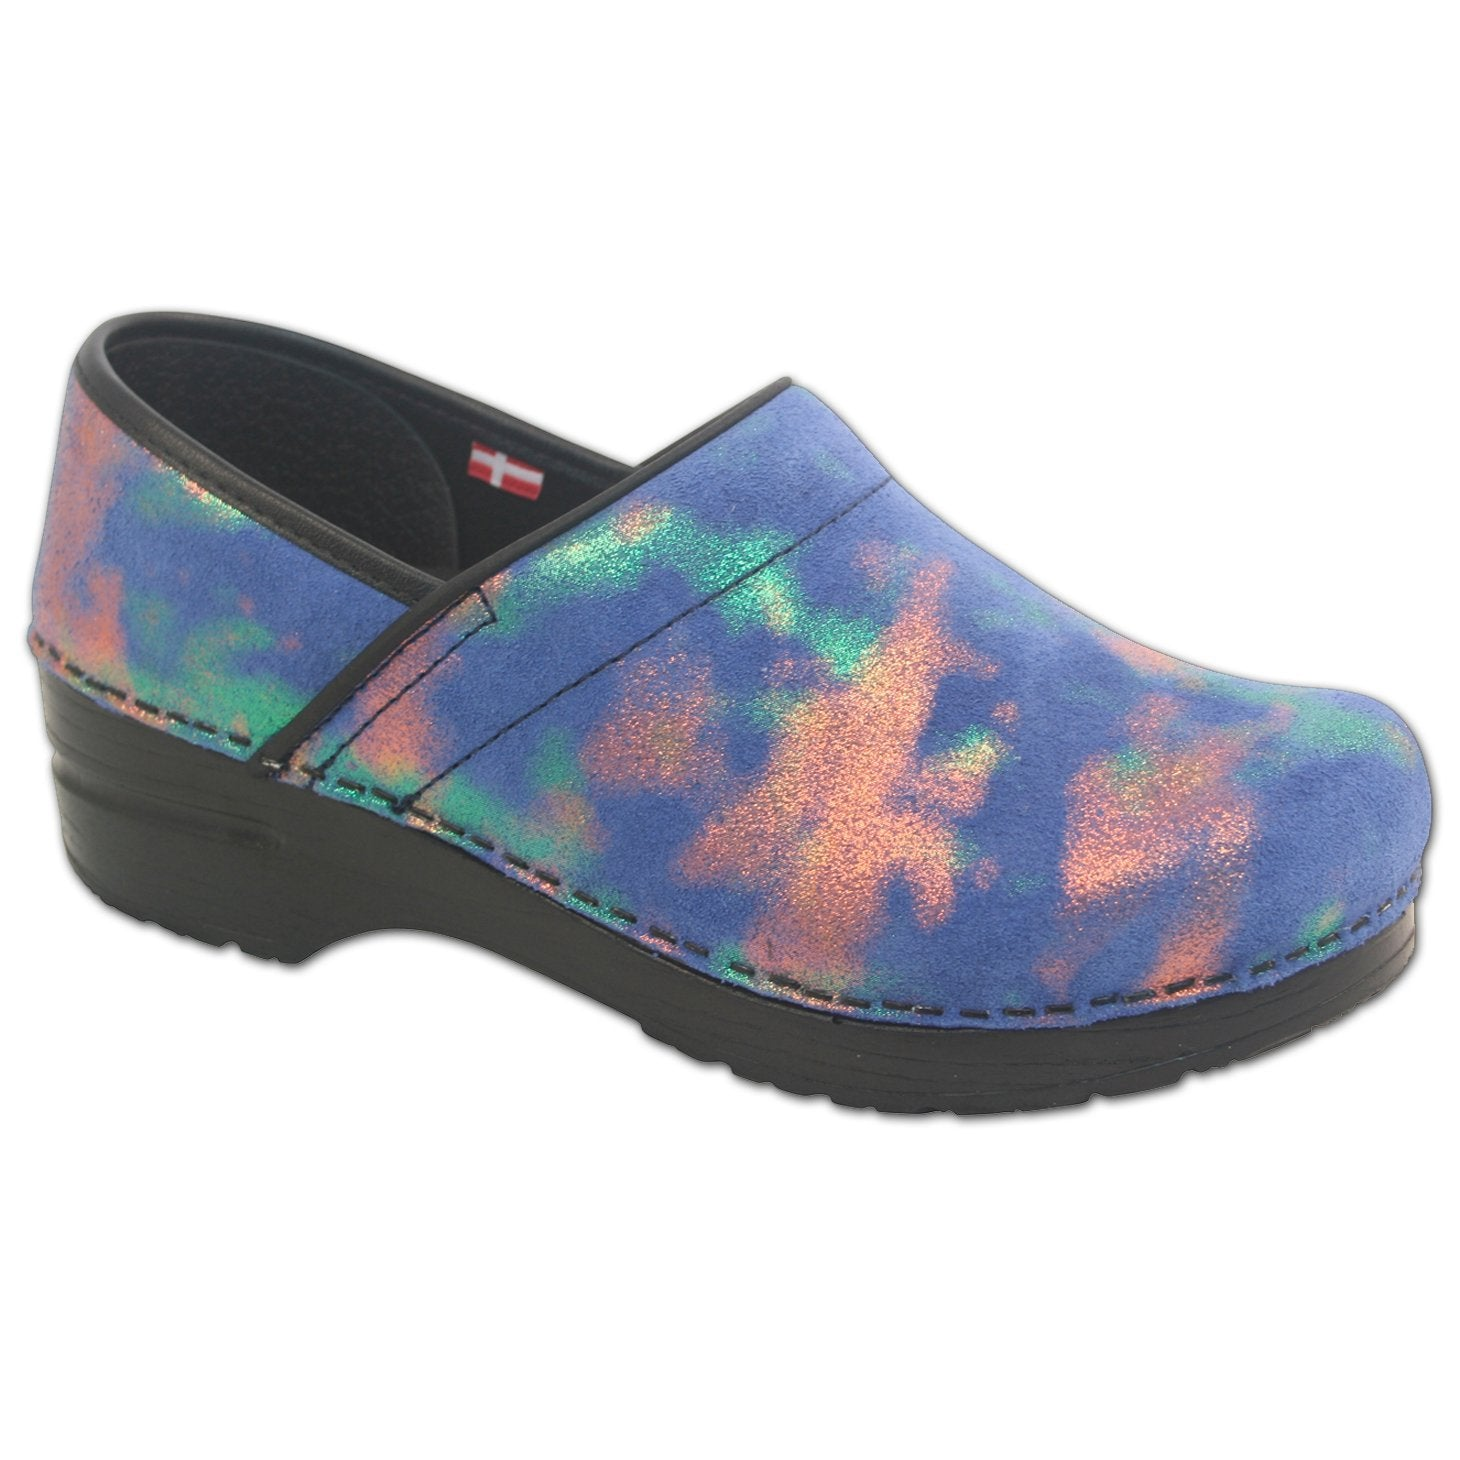 Sanita Pixie Women's Closed Back Clog